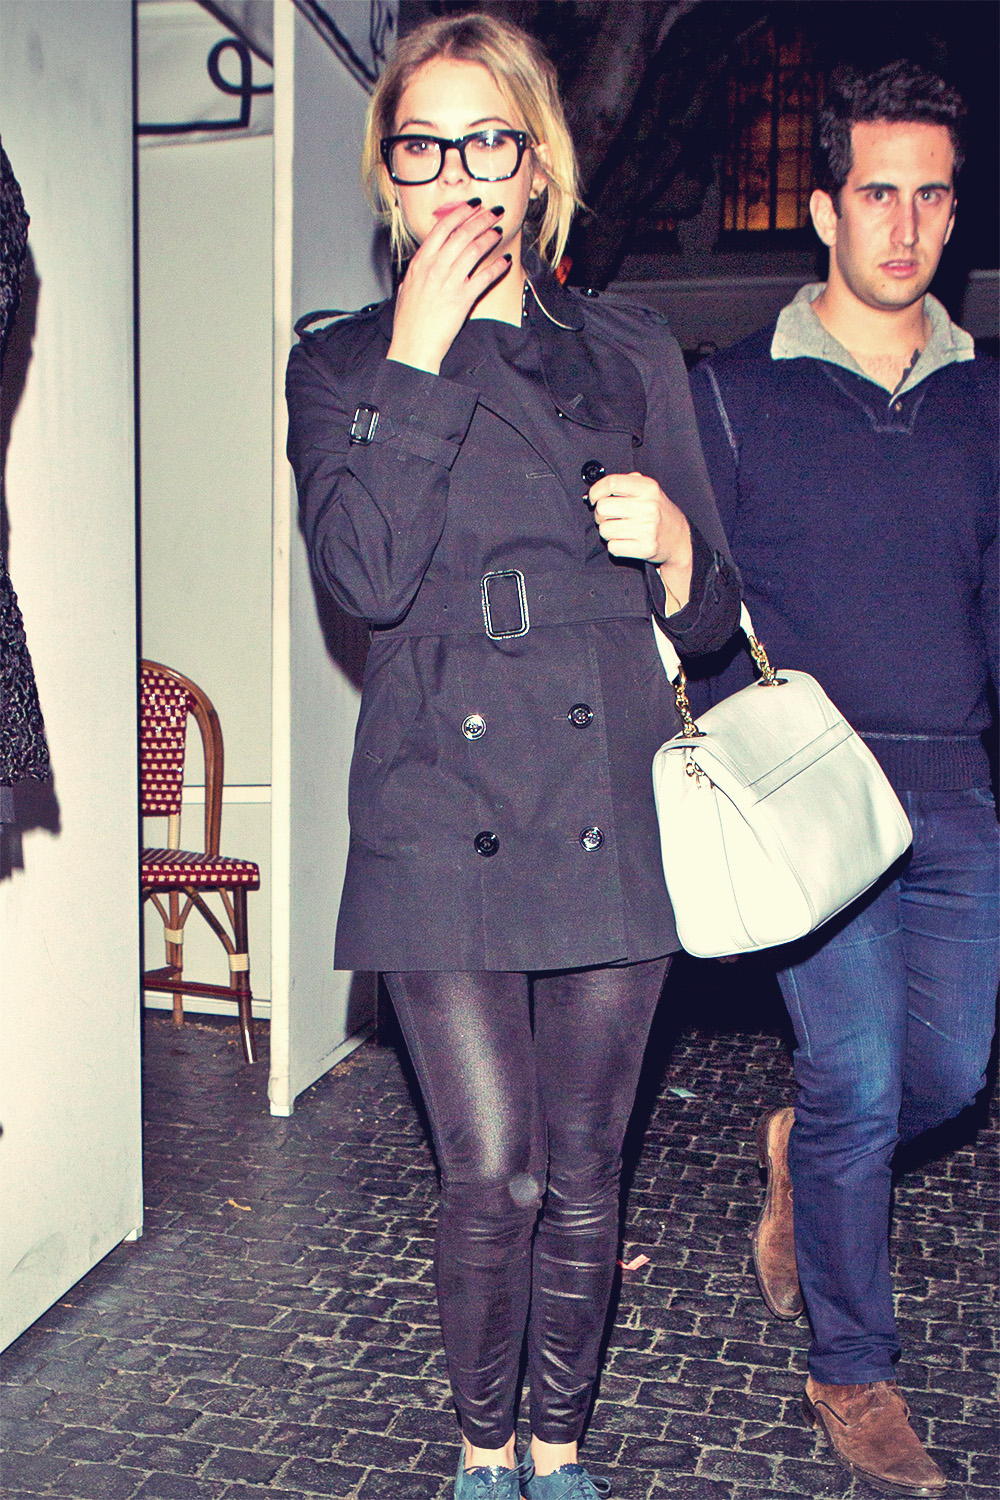 Ashley Benson was seen leaving the Chateau Marmont